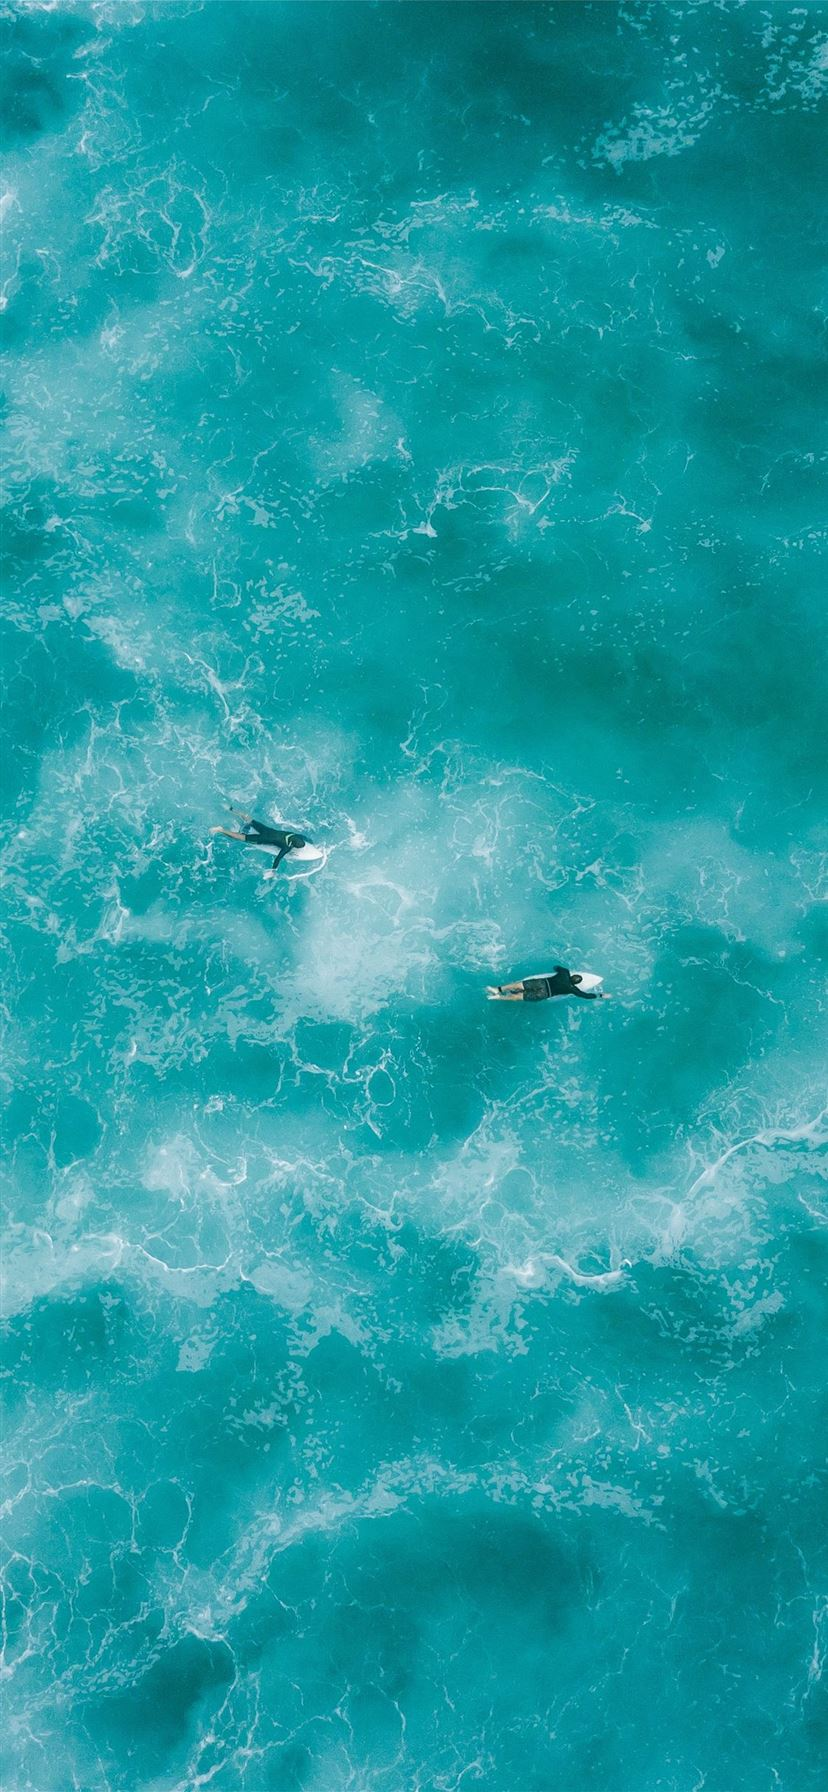 Two People Surfing On Water Iphone 11 Wallpapers Free Download